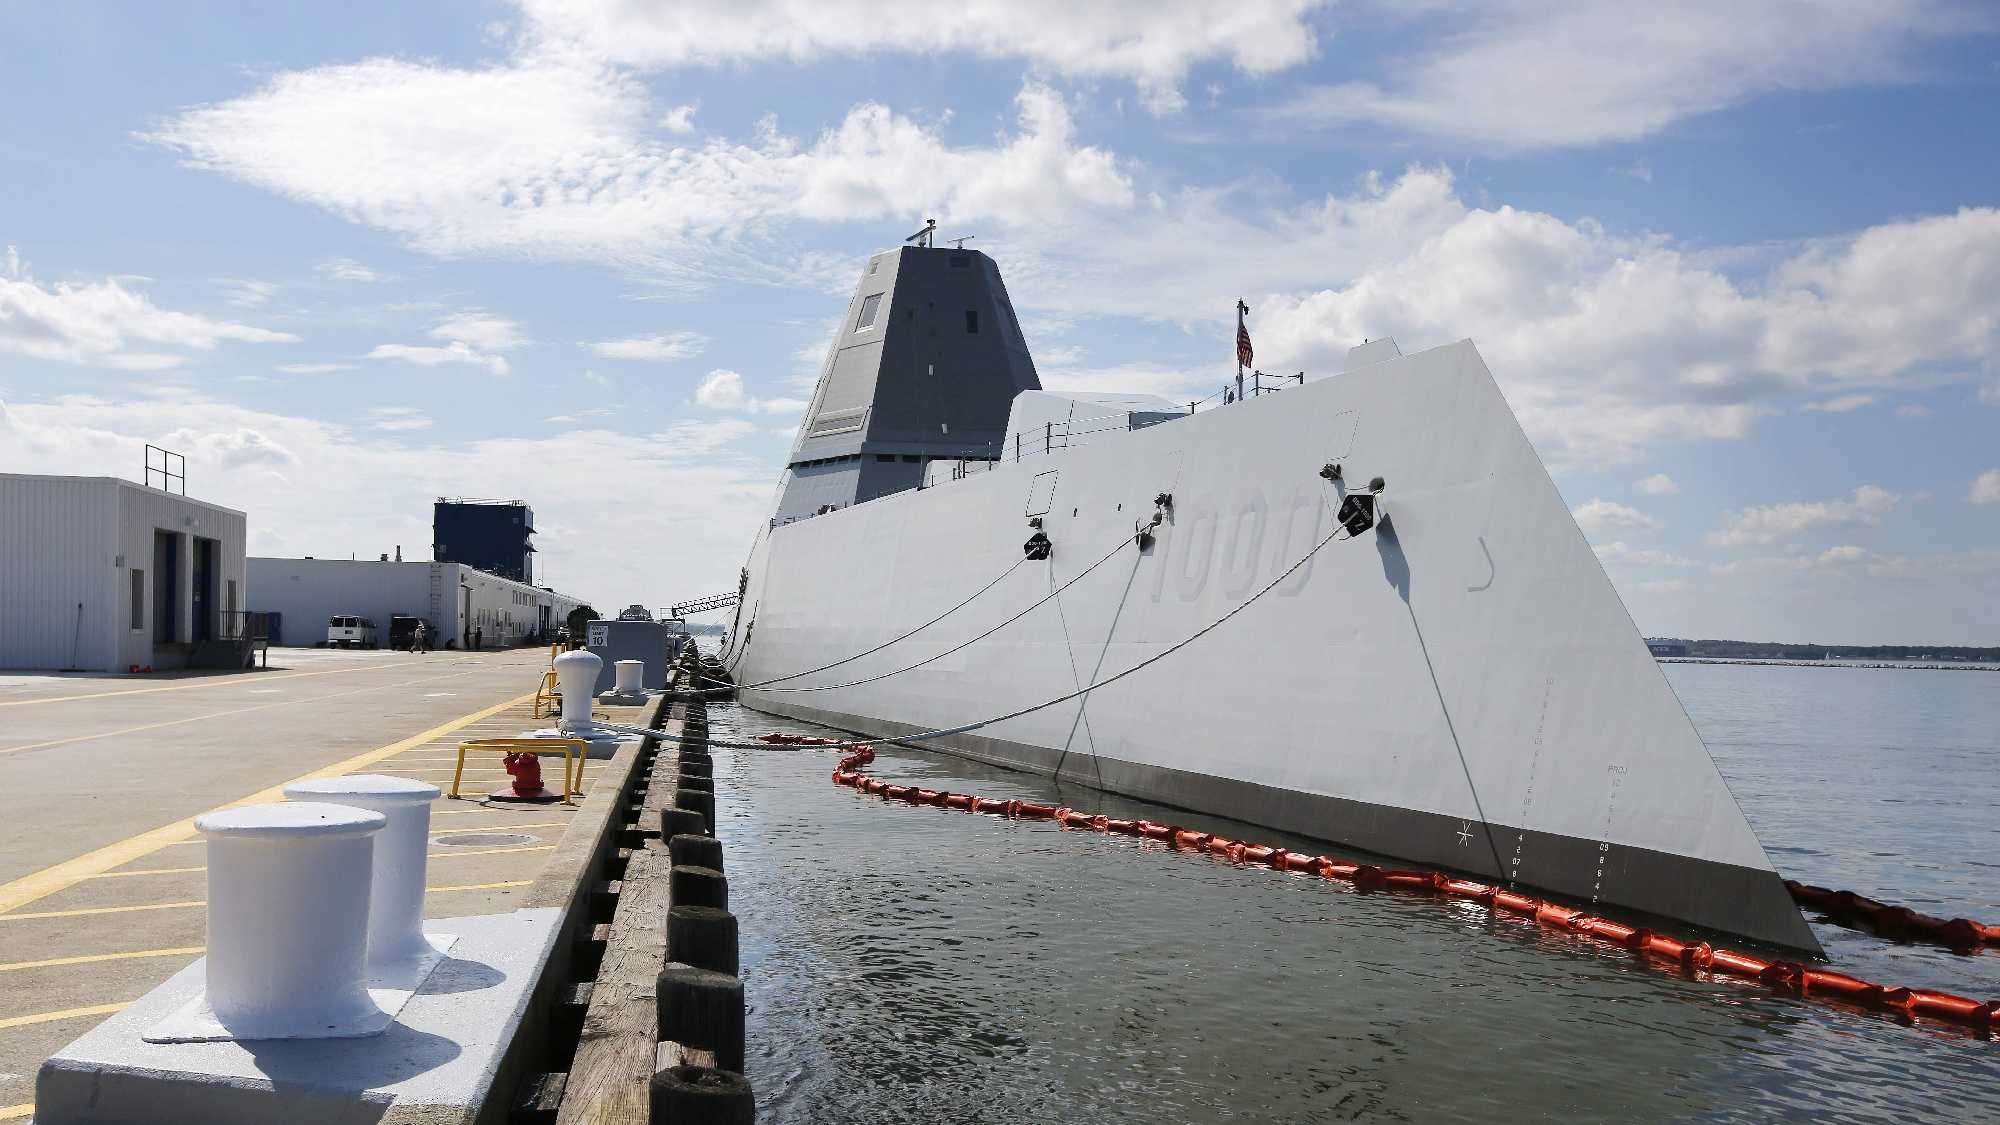 Zumwalt ship navy